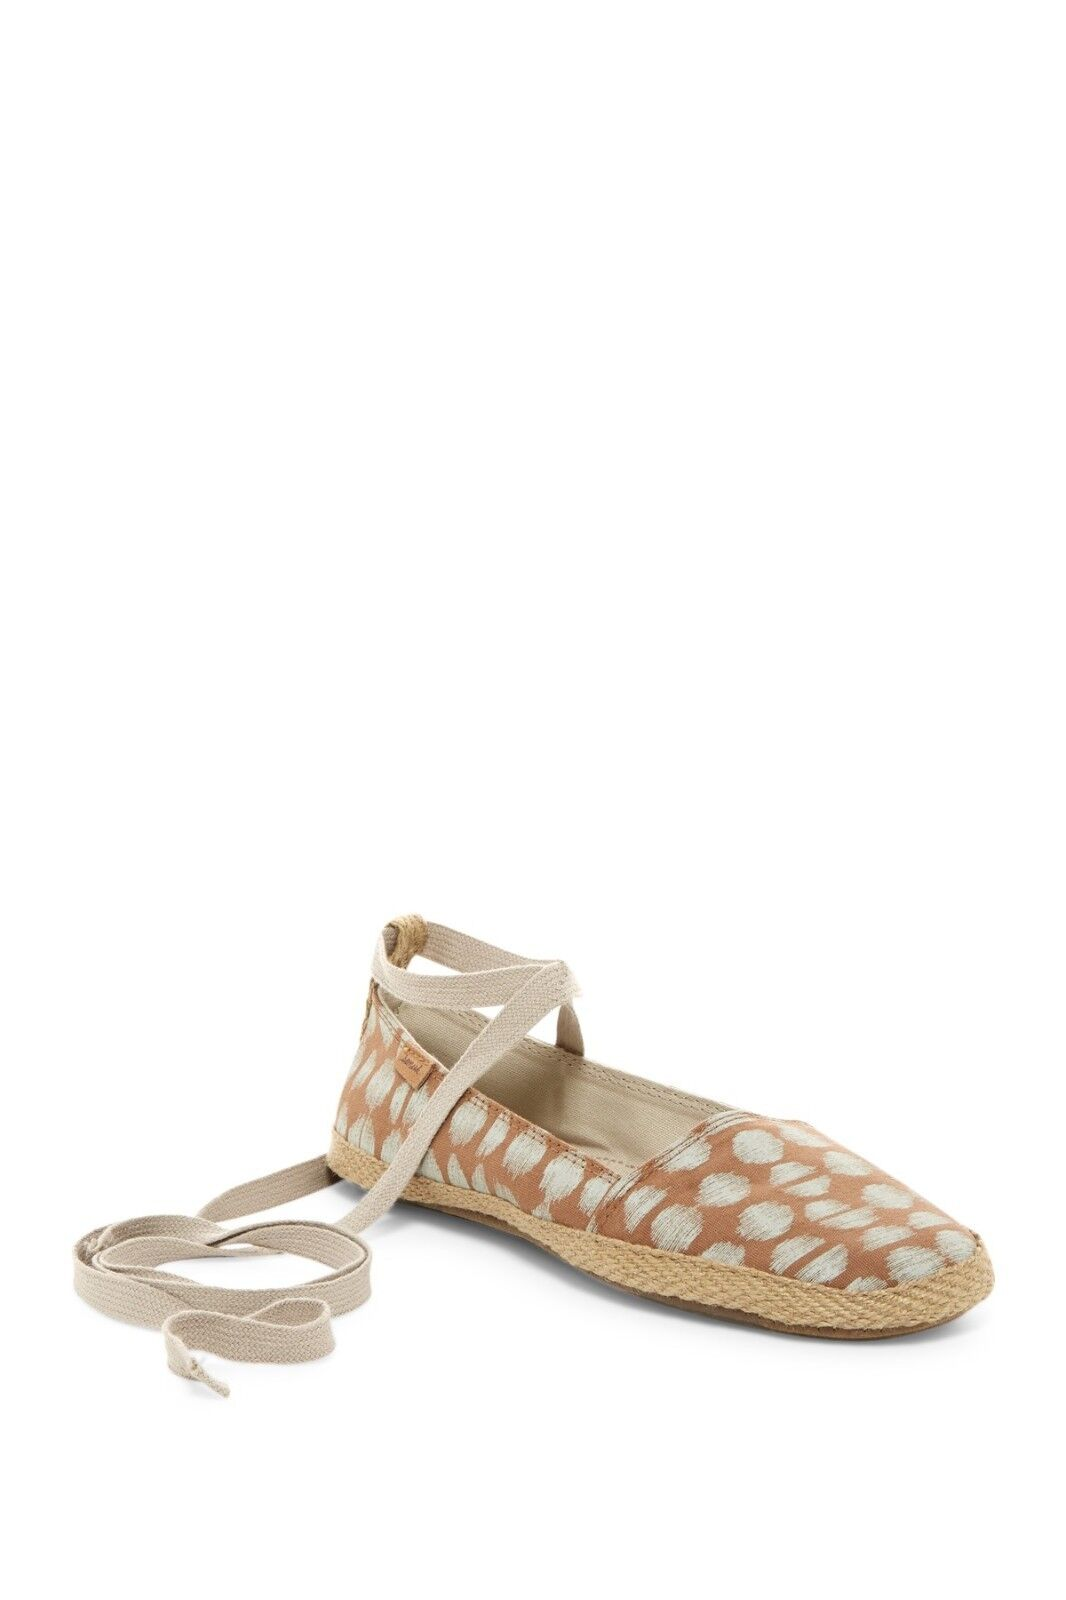 NEW in Box Sanuk Espie Lace-Up Ankle Flat ballerina style lace Size 9.5 B